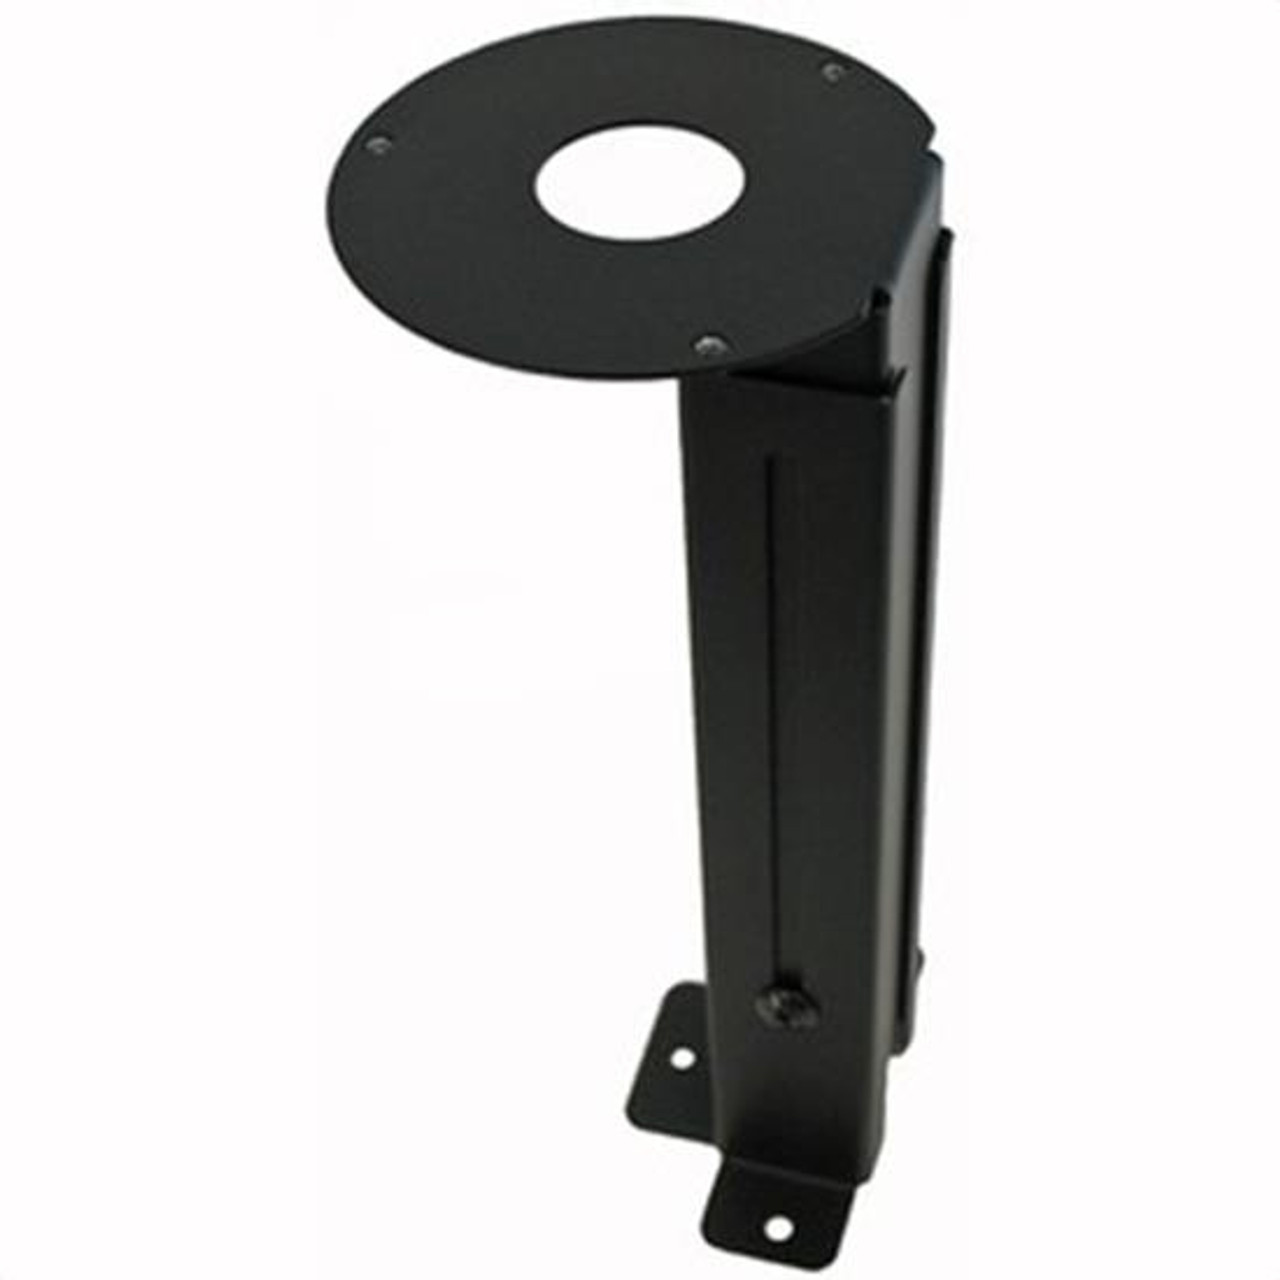 Telescoping Riser Mount Credit Card Stand by Swivel Stands